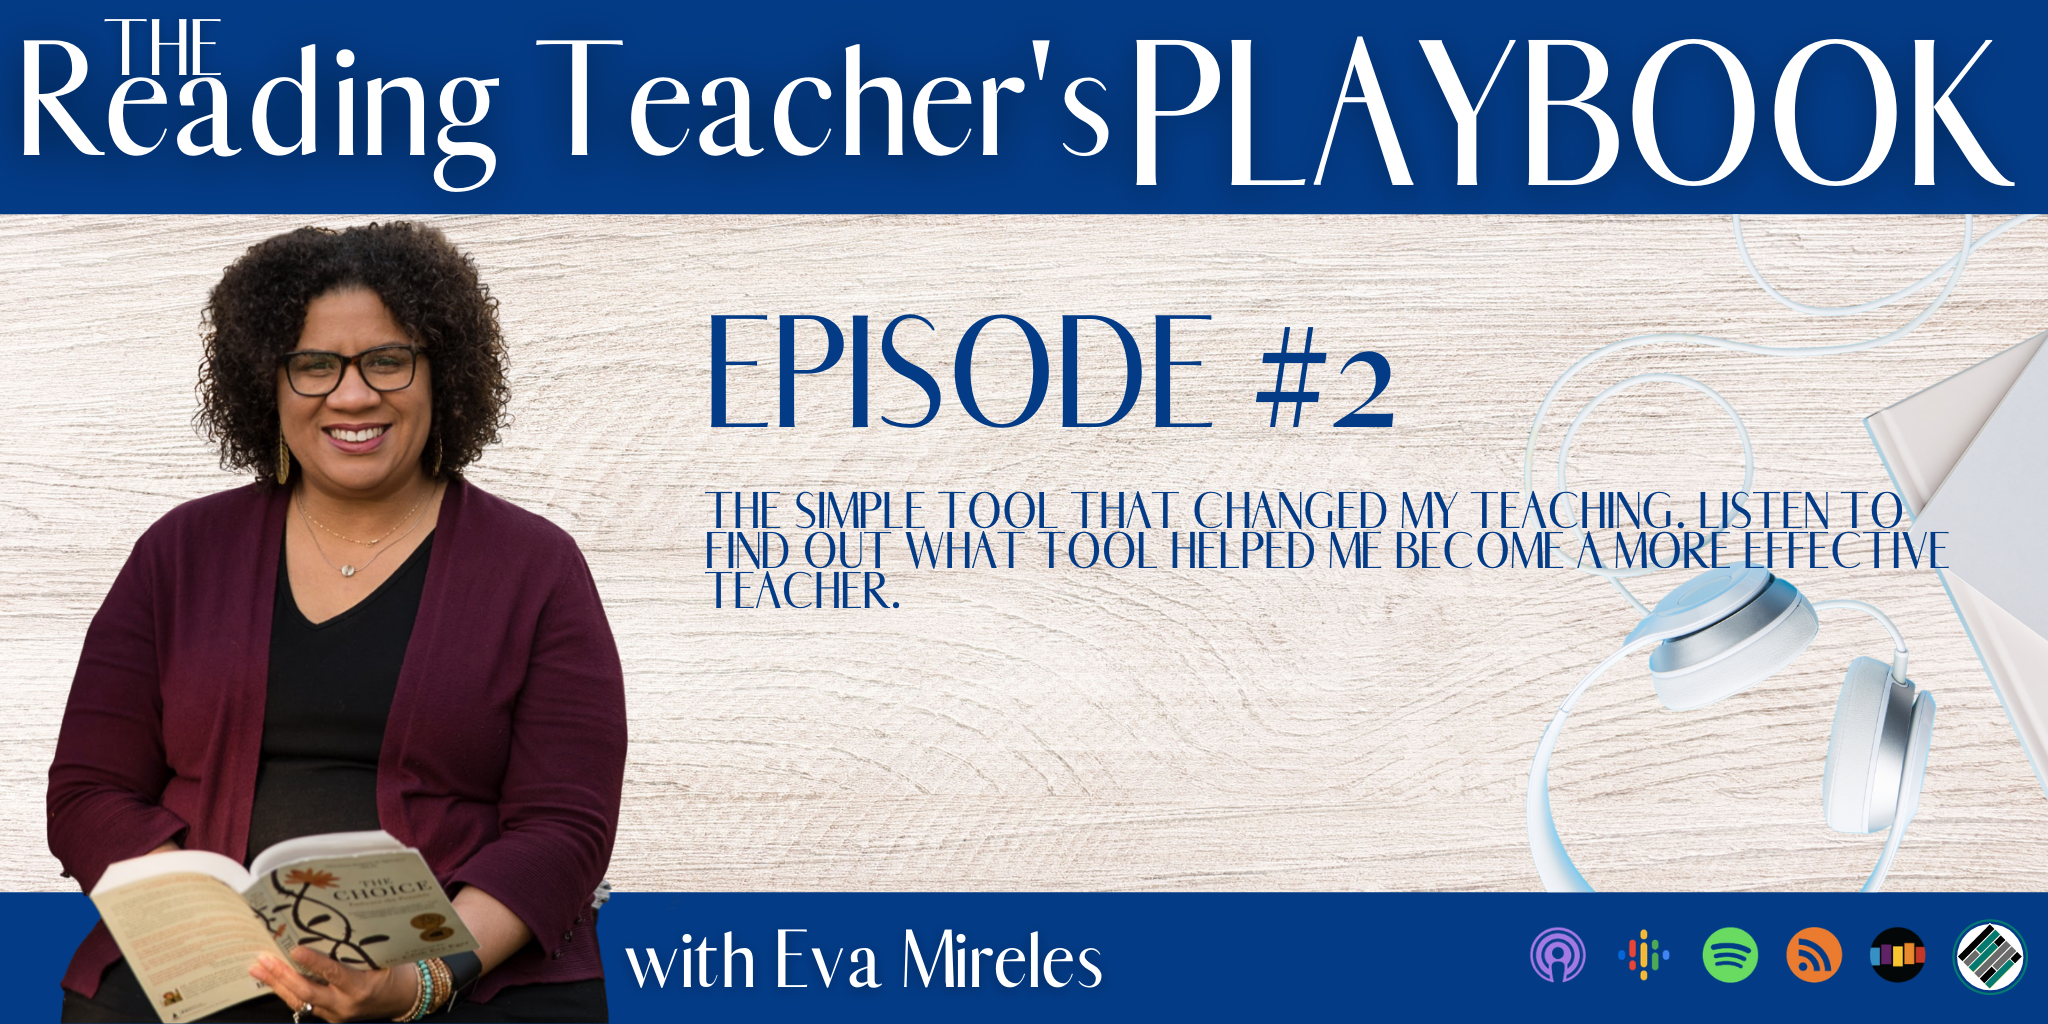 The-Reading-Teacher's-Playbook-Ep-2